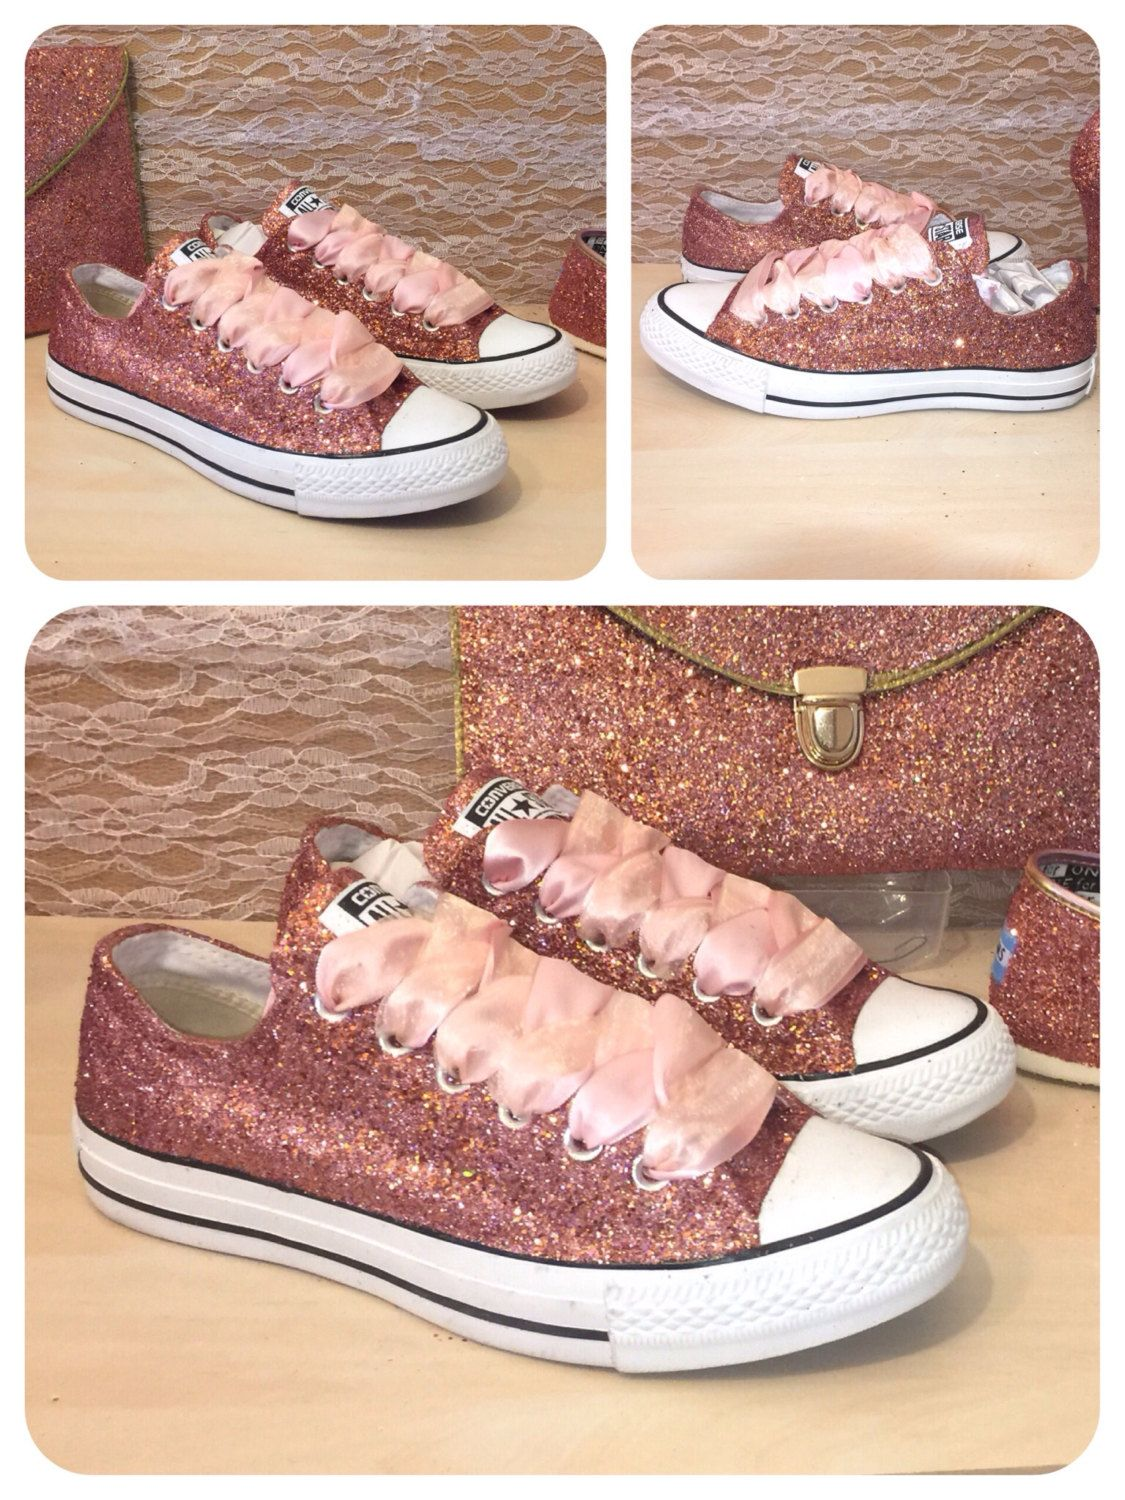 Womens metallic Rose gold Sparkly glitter Converse all star chucks sneakers  shoes white or pink satin laces bride wedding prom sweet 16 by  CrystalCleatss on ... 2ce97e361